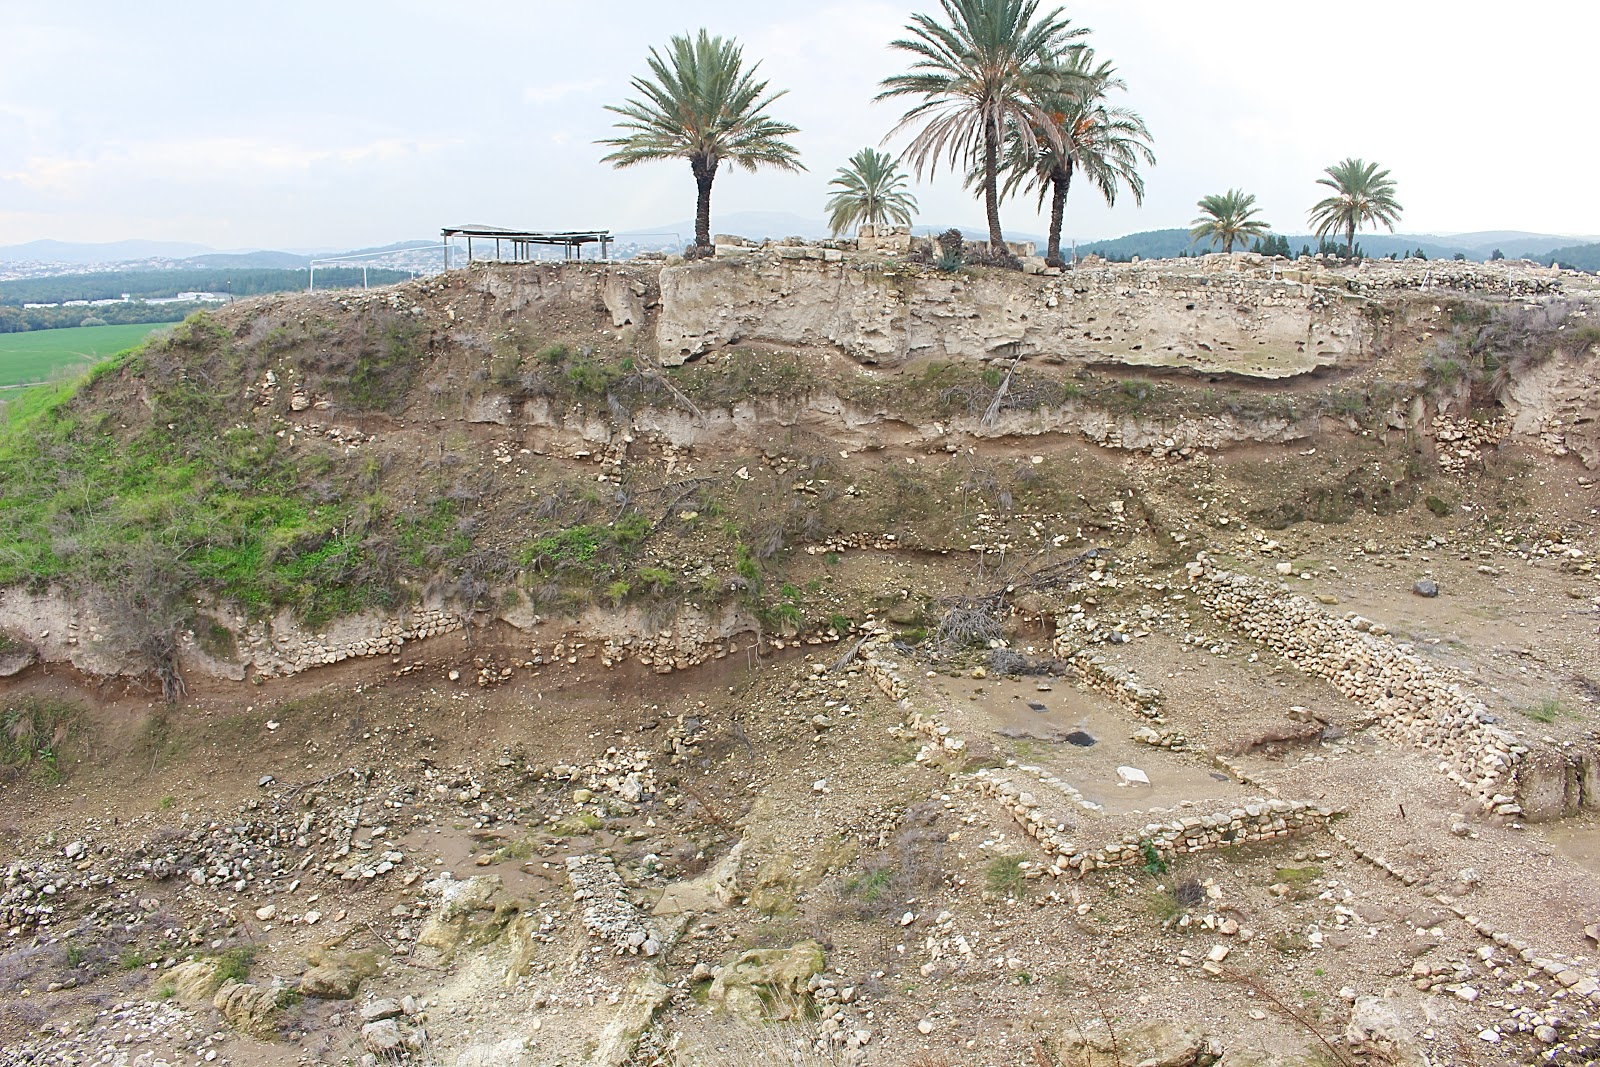 Tel Megiddo (Armageddon): A Pilgrimage to the Holy Land Israel